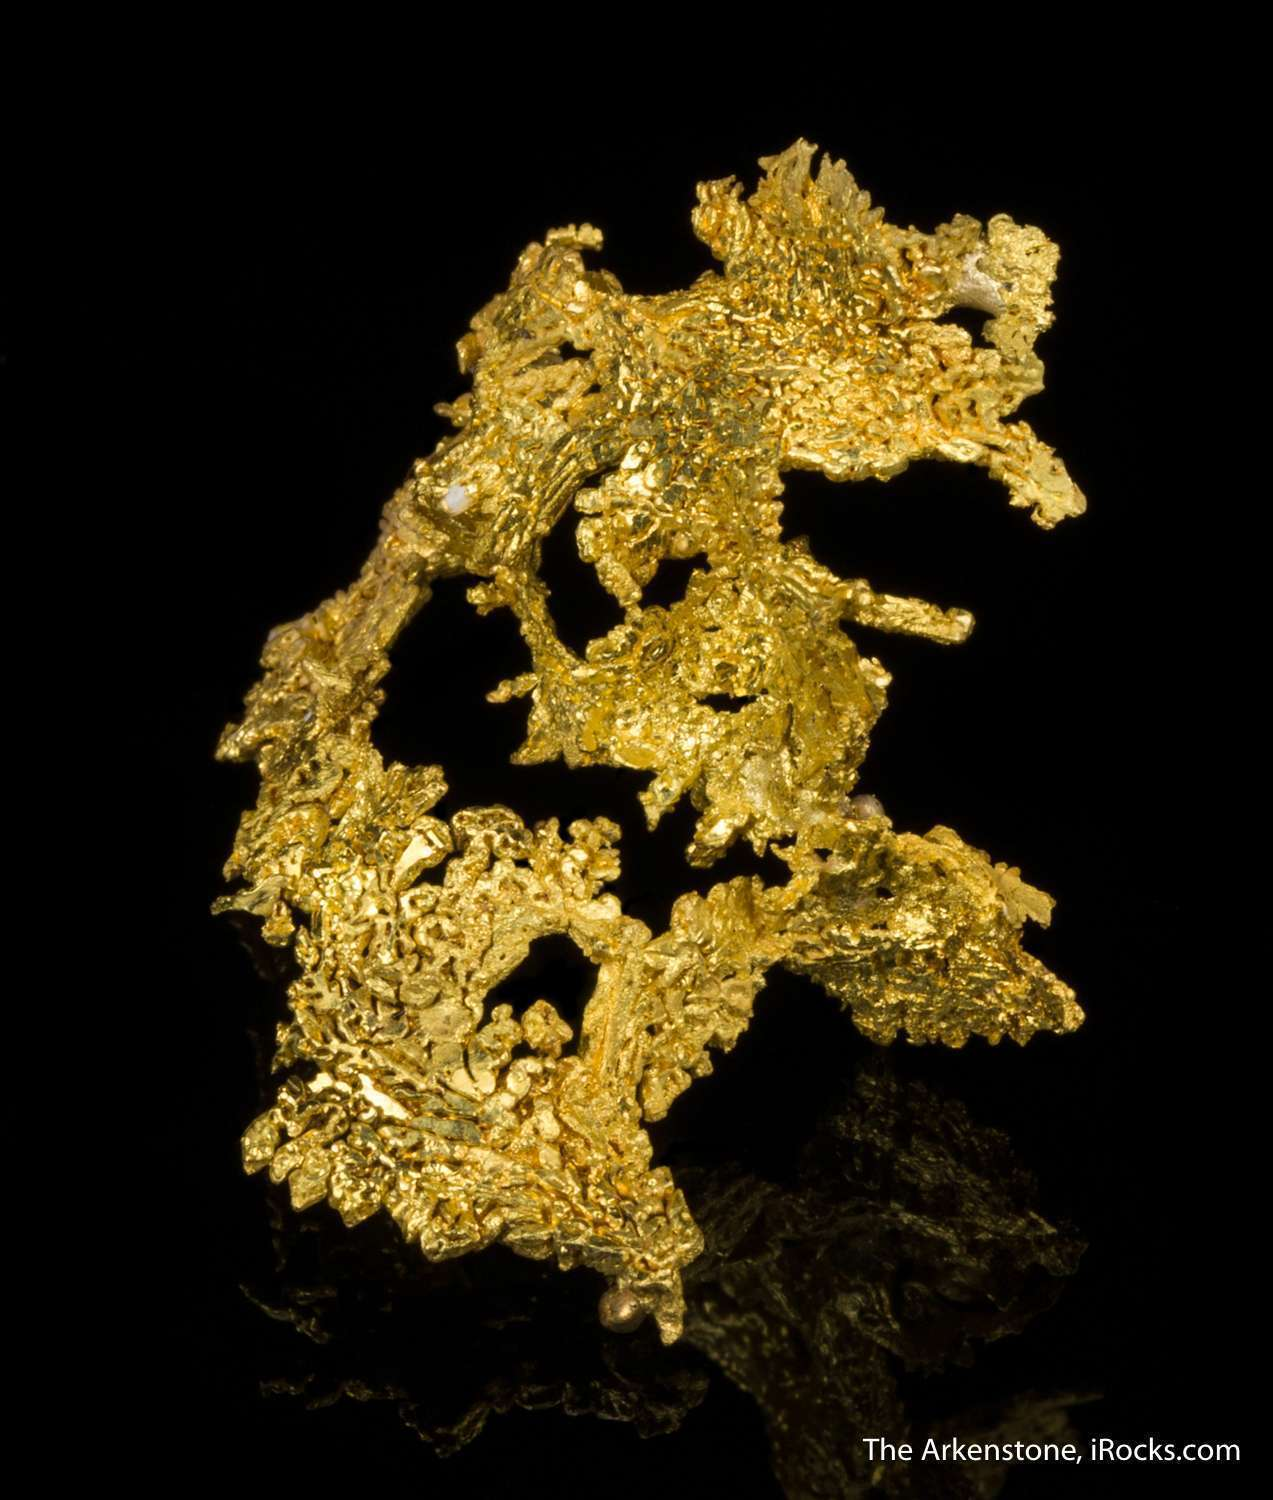 A particularly elegant large miniature shaped somewhat like gold